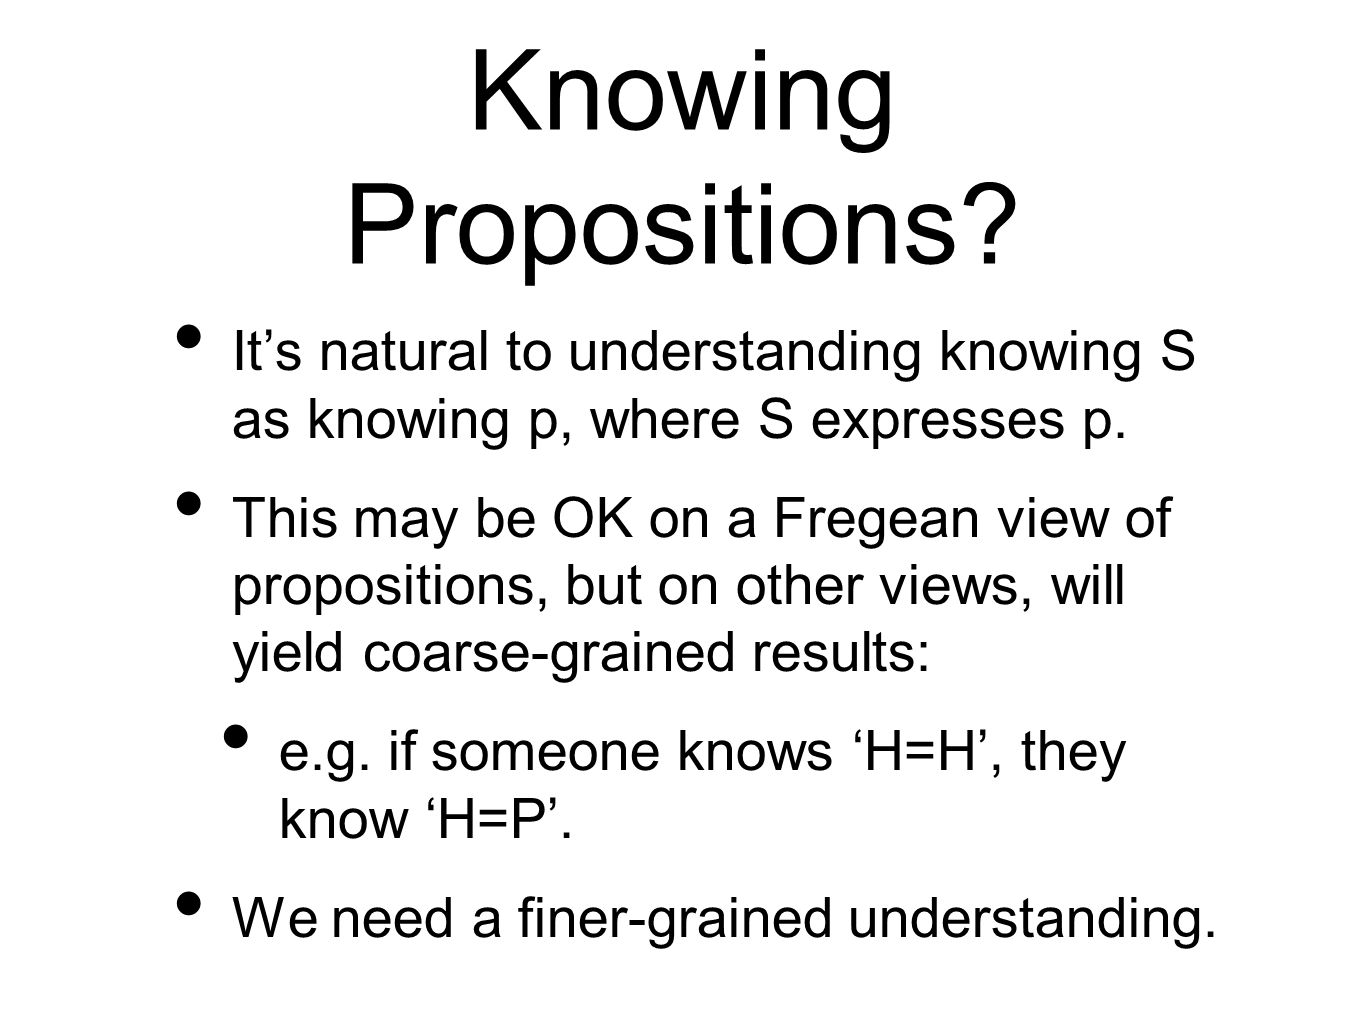 Knowing Propositions. Its natural to understanding knowing S as knowing p, where S expresses p.